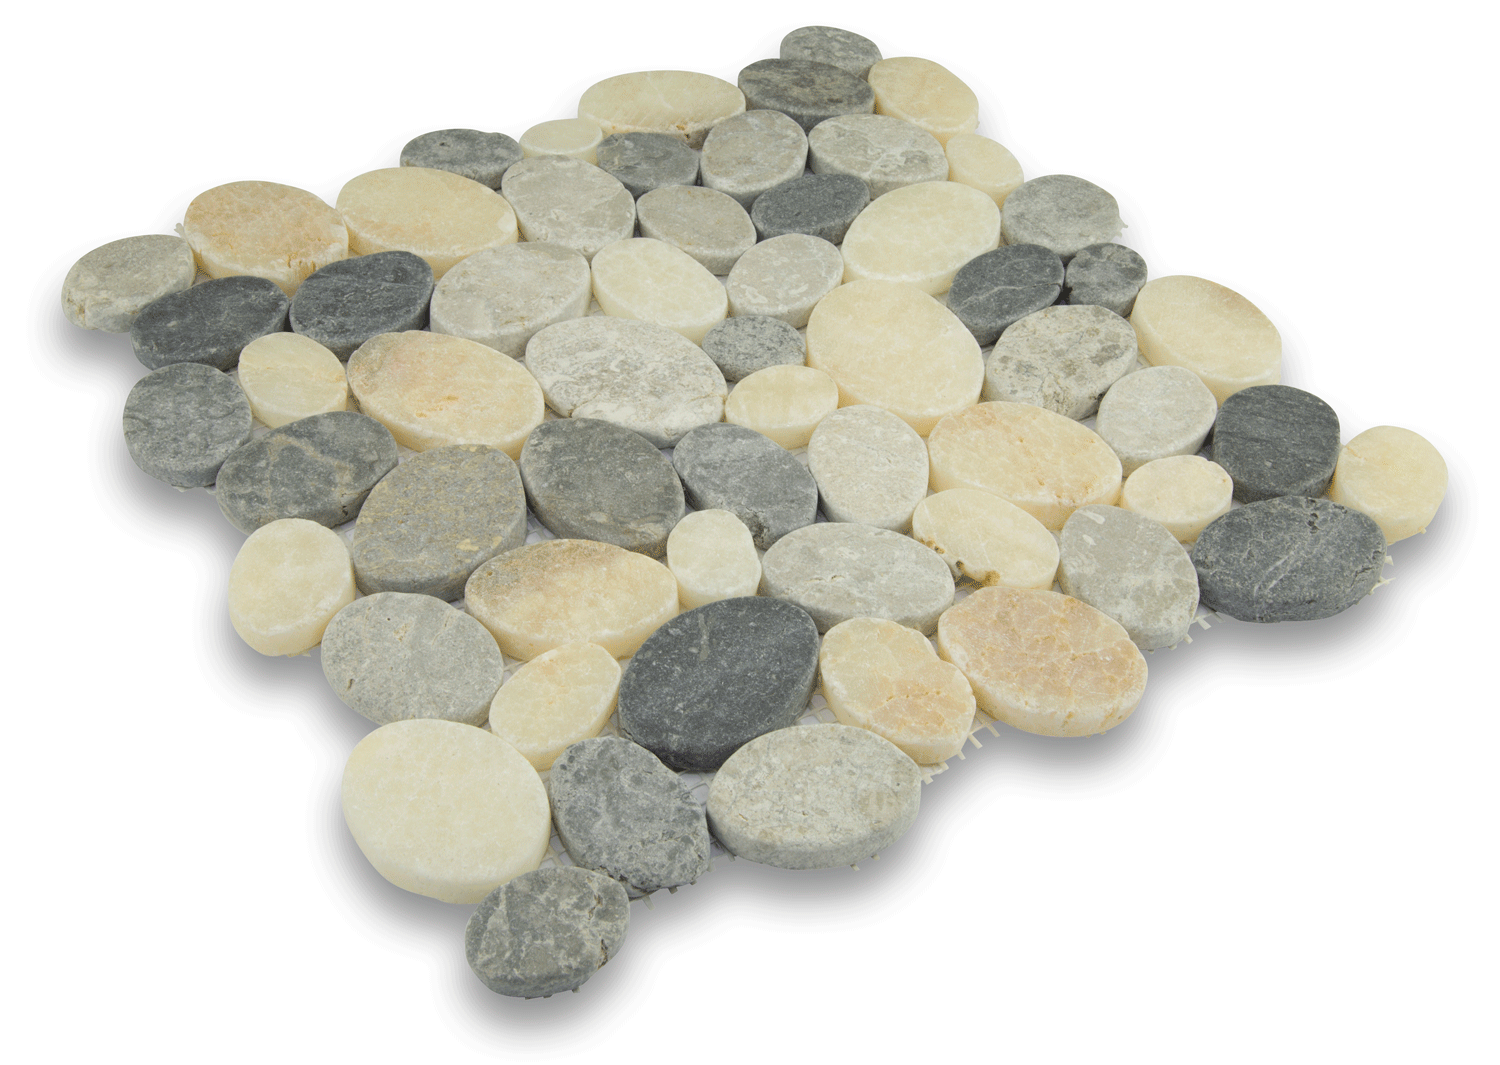 MULTI GREY & QUARTZ MIX, RANDOM COBBLES- Island, Random Series